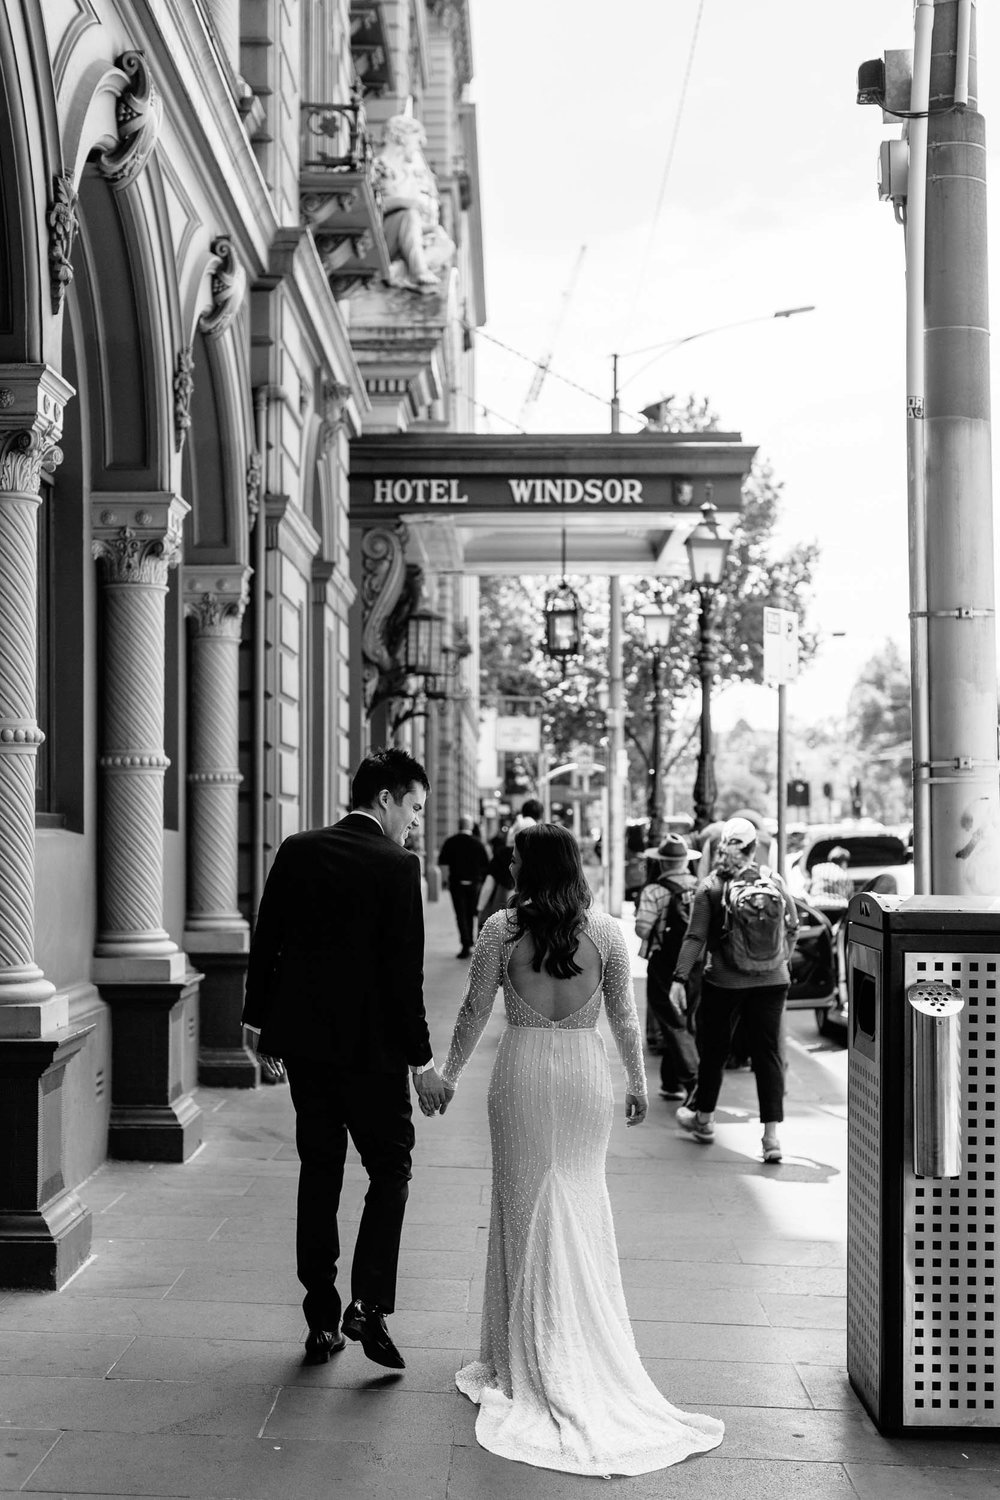 Kas-Richards-Wedding-Photographer-Melbourne-City-Wedding-Alto-Event-Space-Jane-Hill-Bridal-Gown-11.jpg